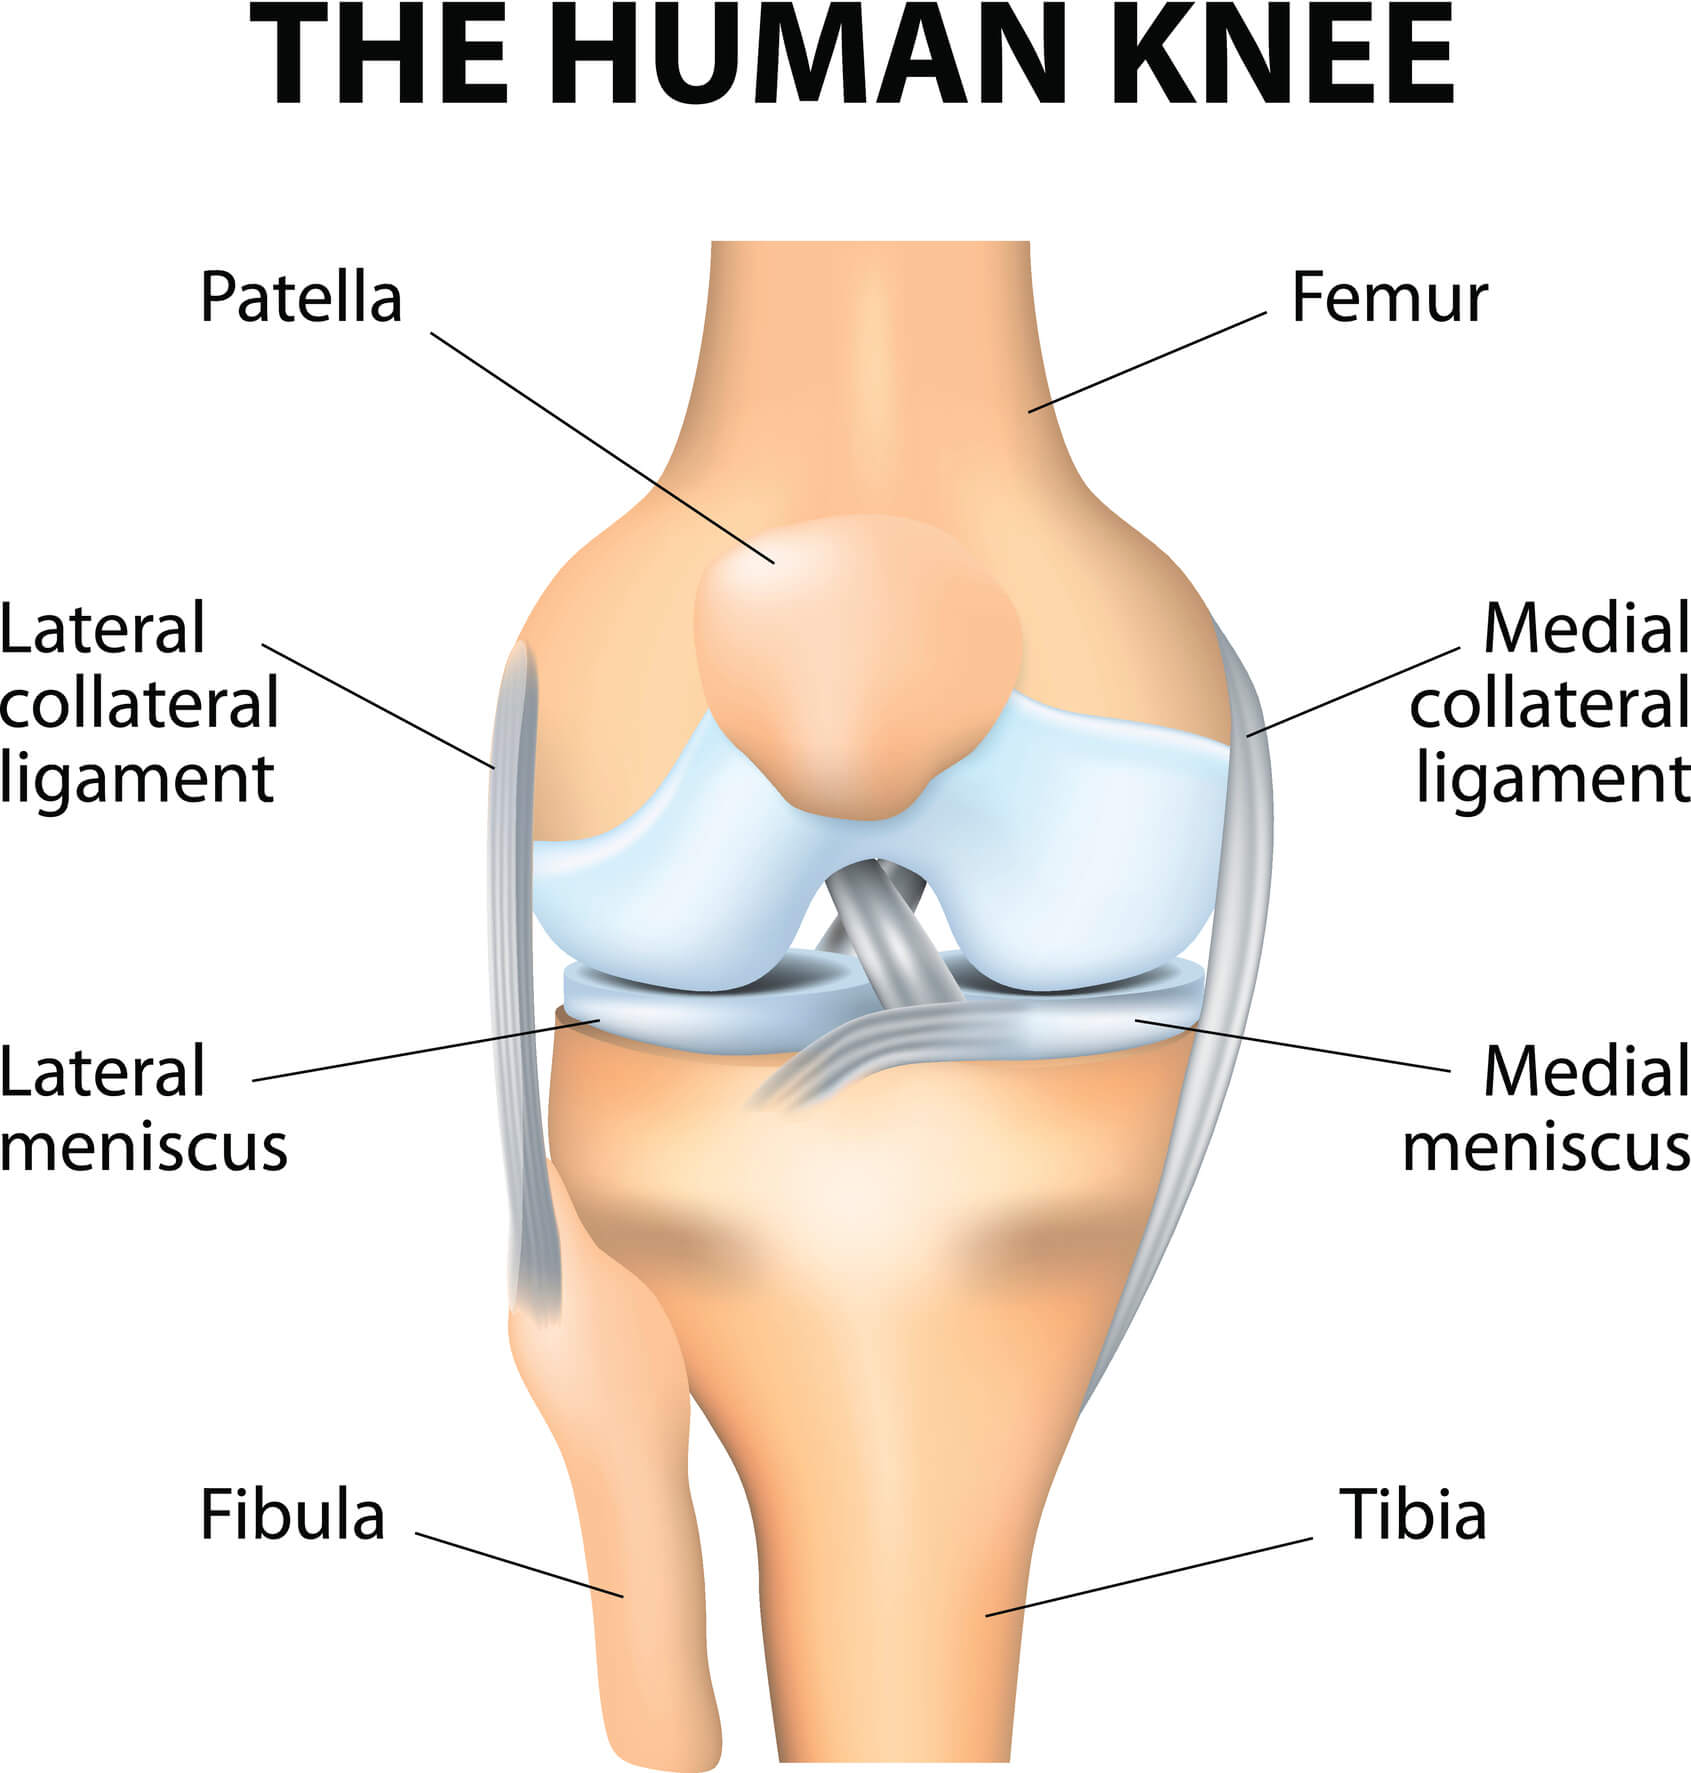 Image of the medial and lateral menisci of the knee